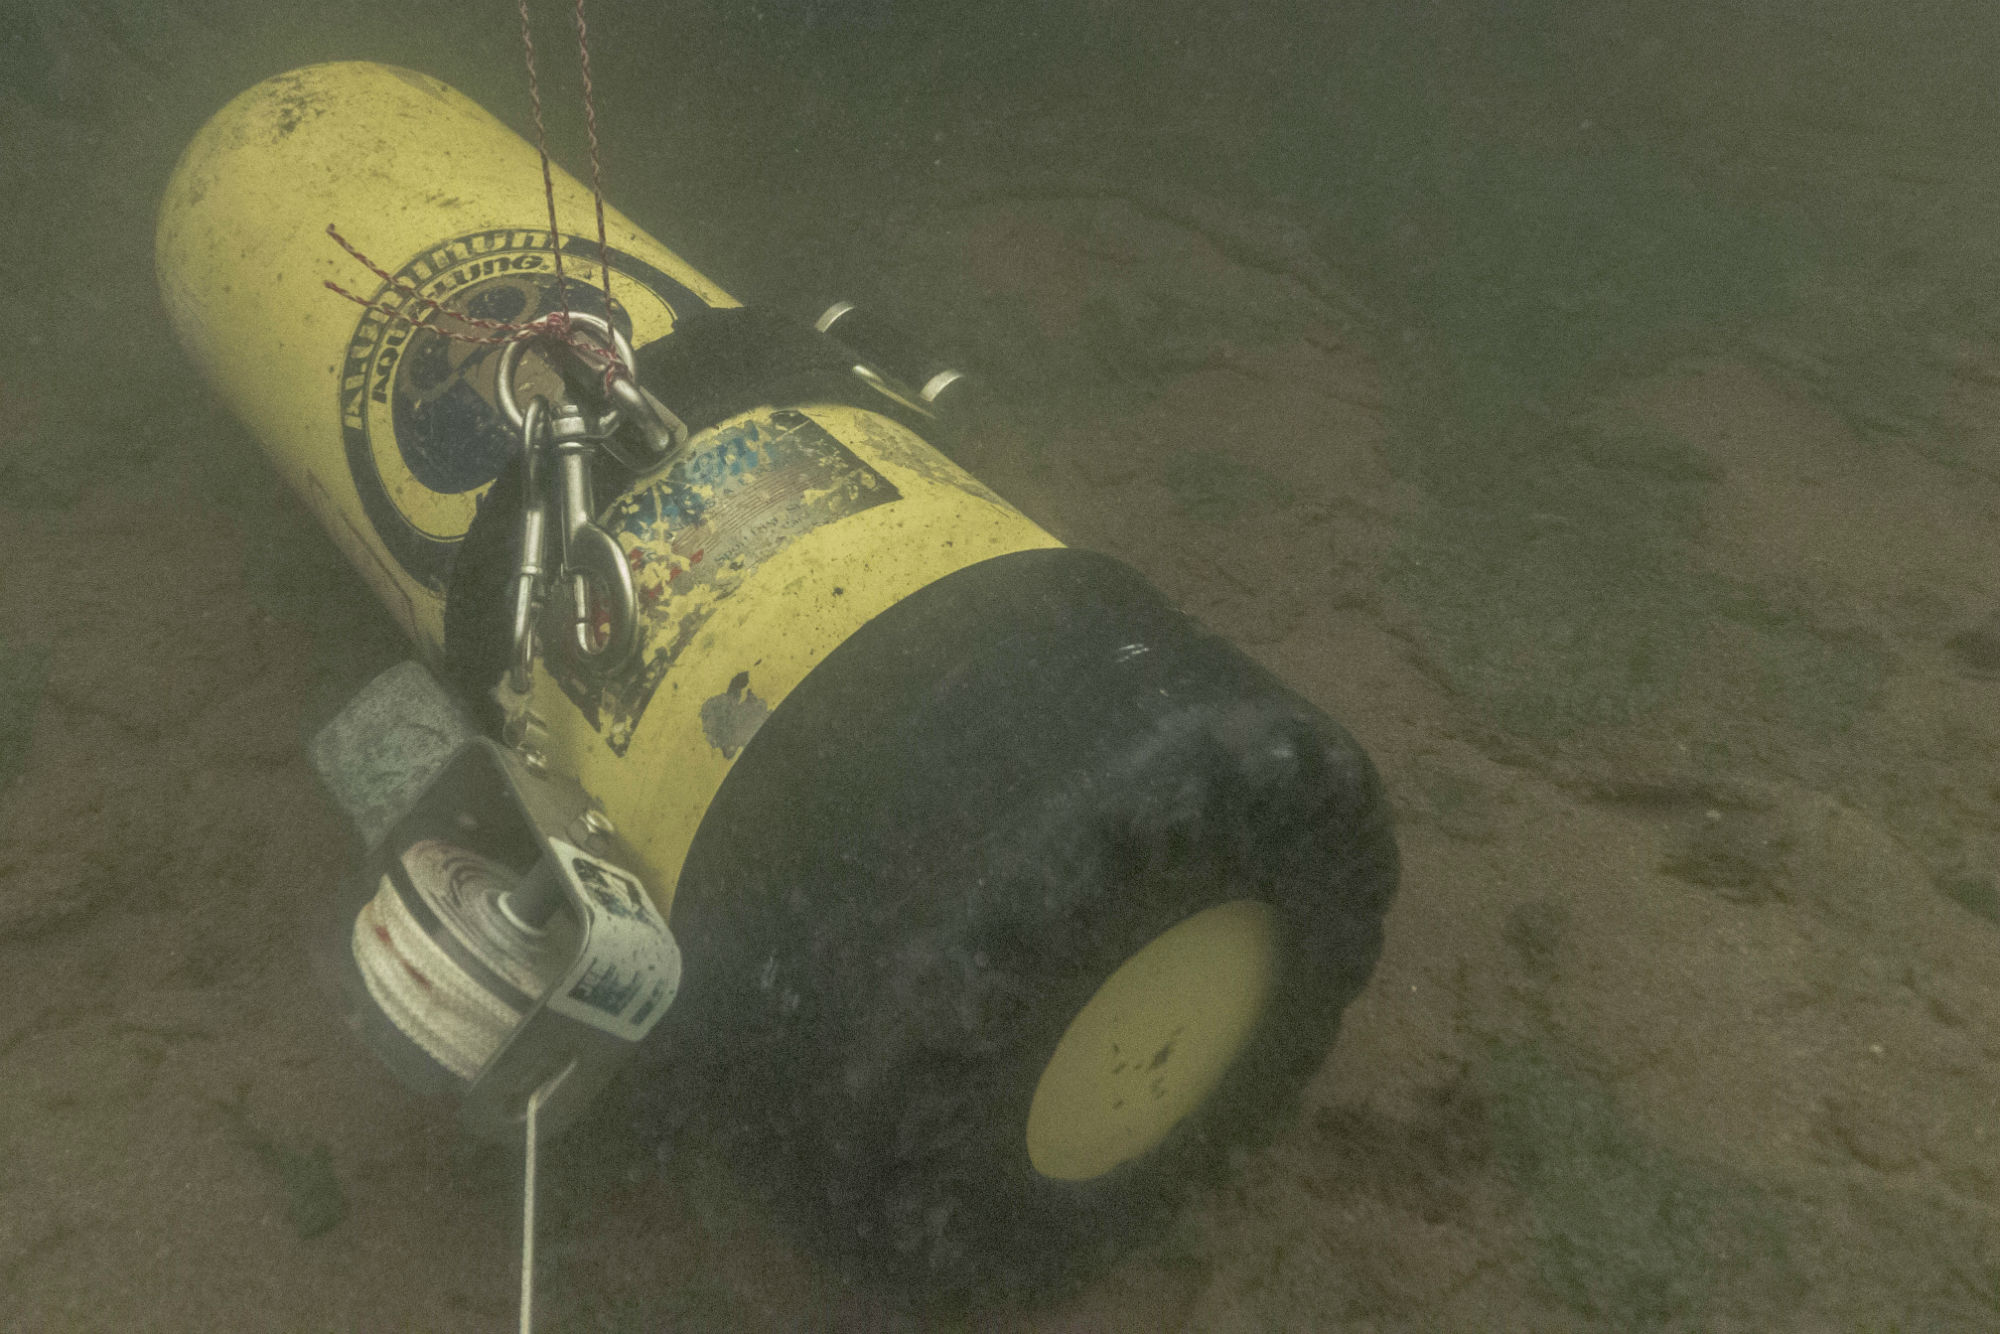 The Scuba Diving Tank of Zombie Gas on the Bottom of the River